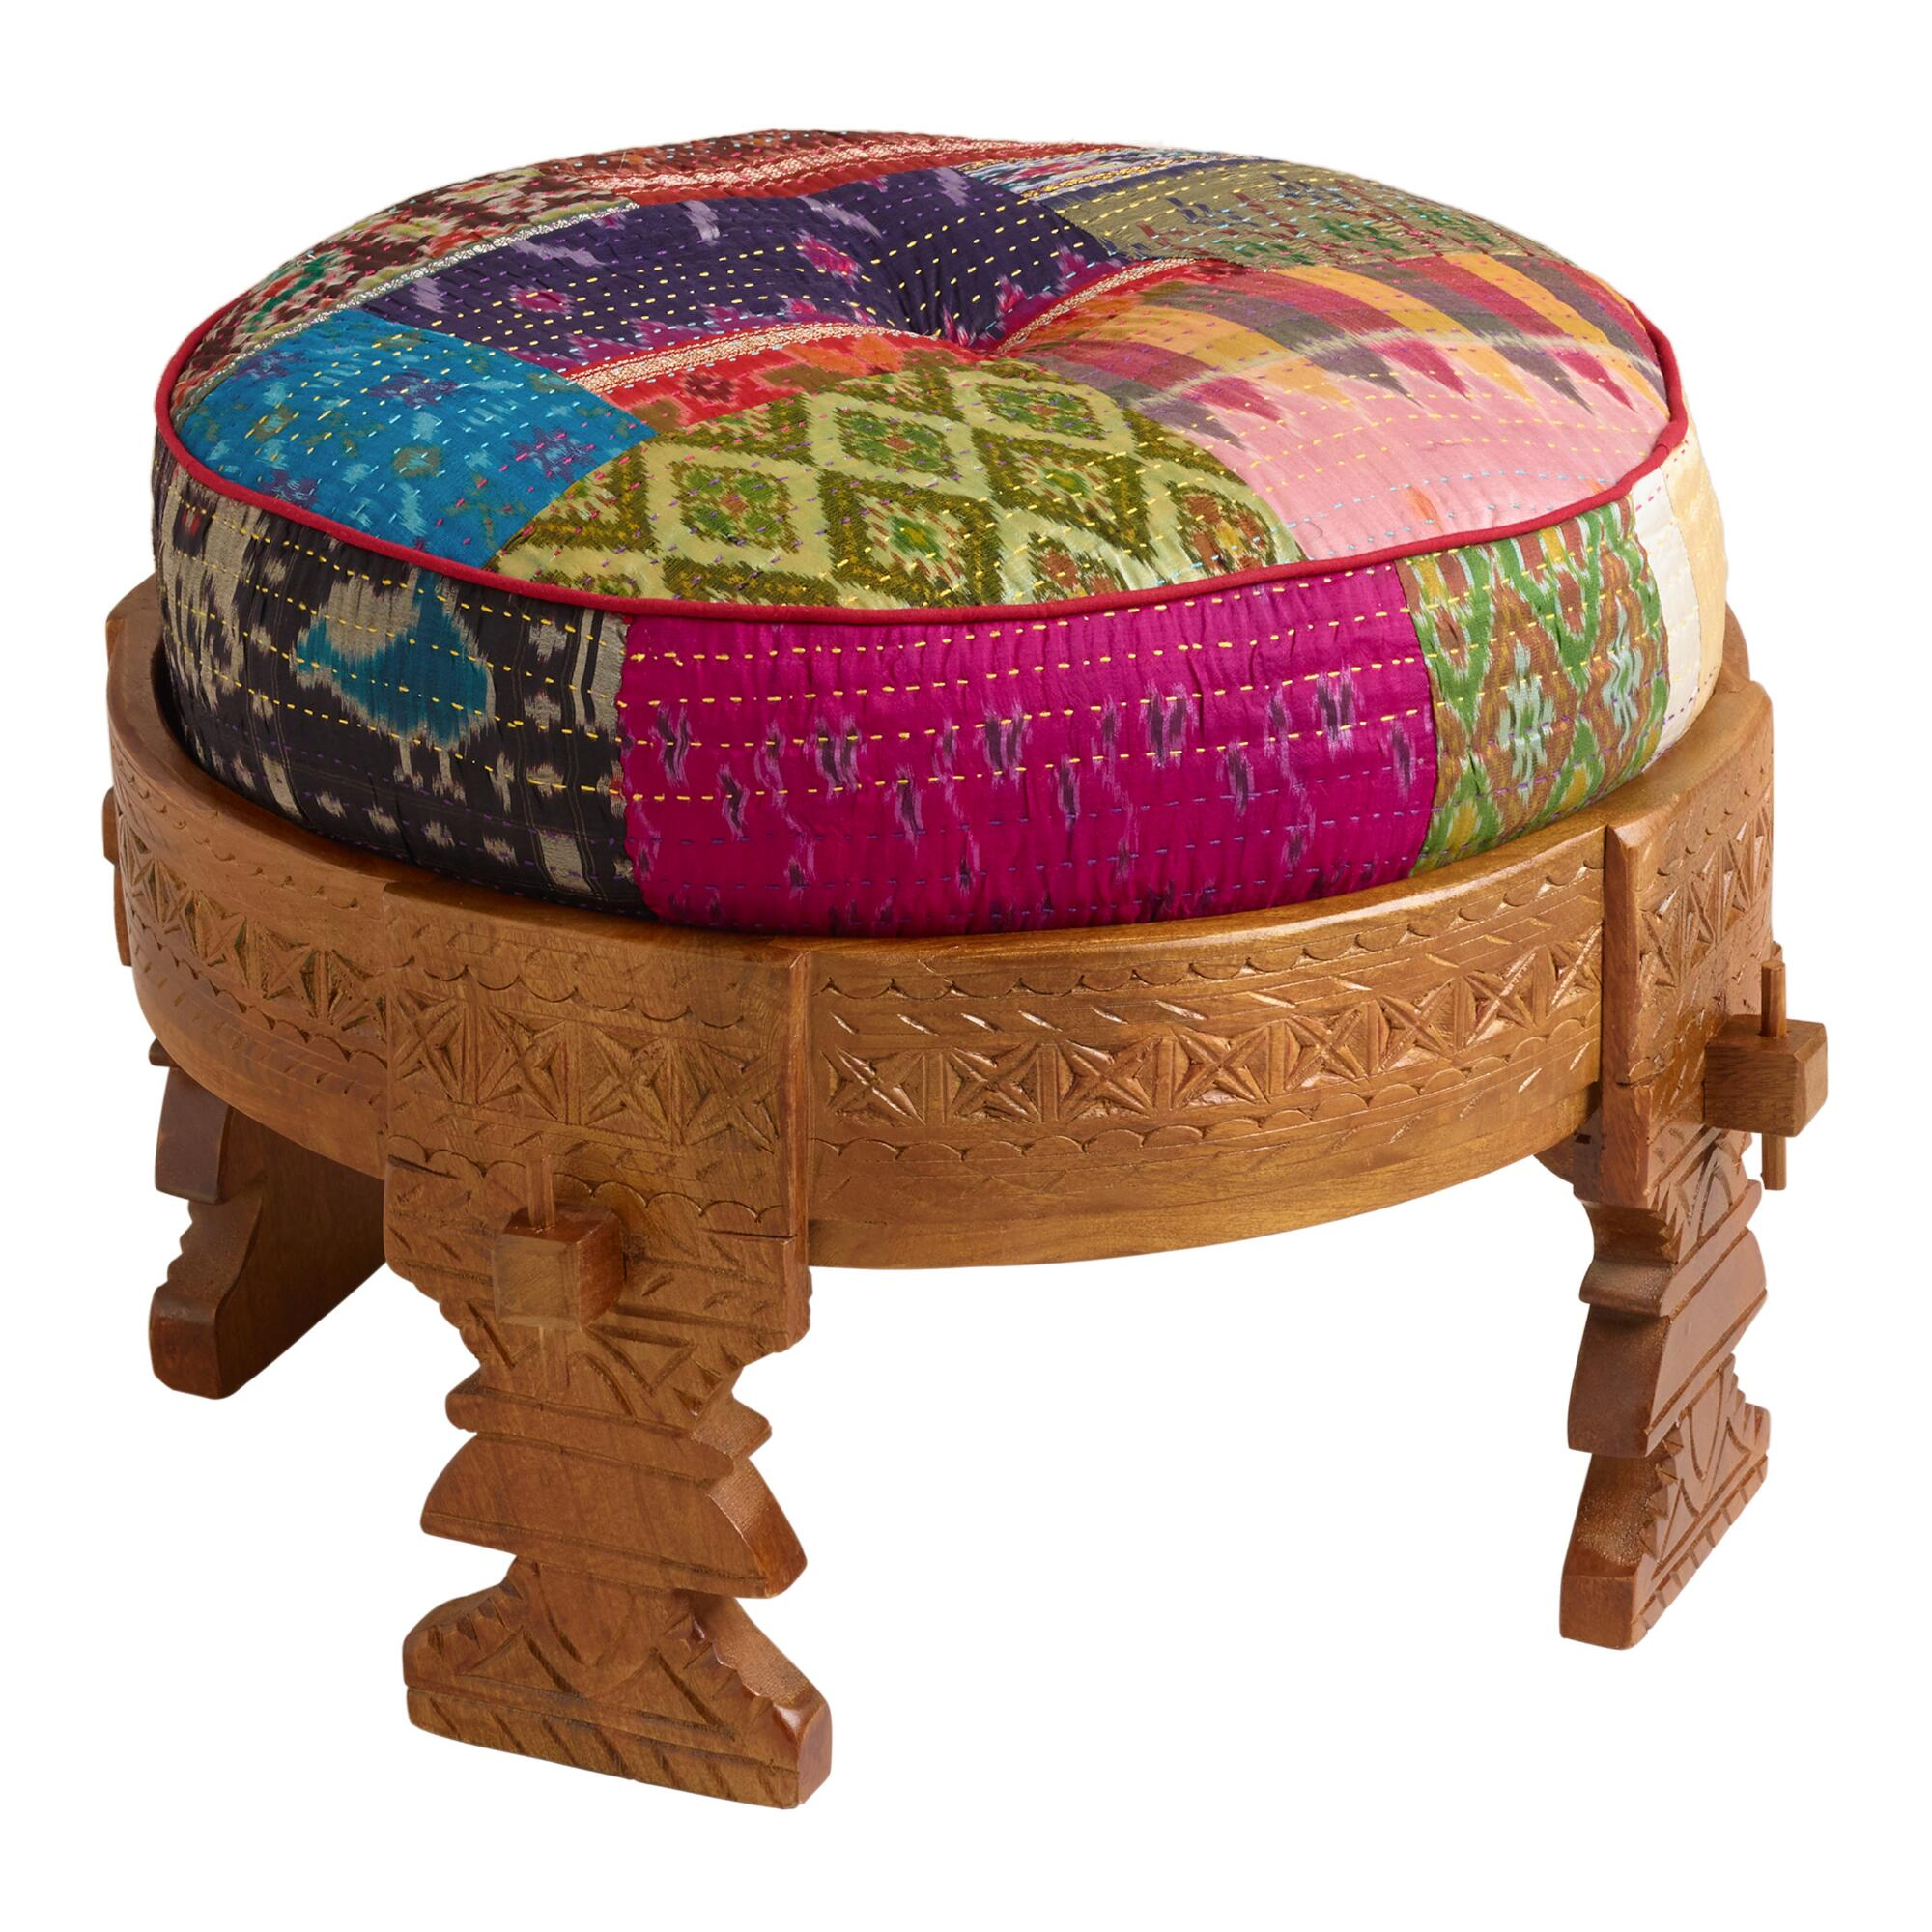 World Bazar: Bajot Stool With Sari Pouf